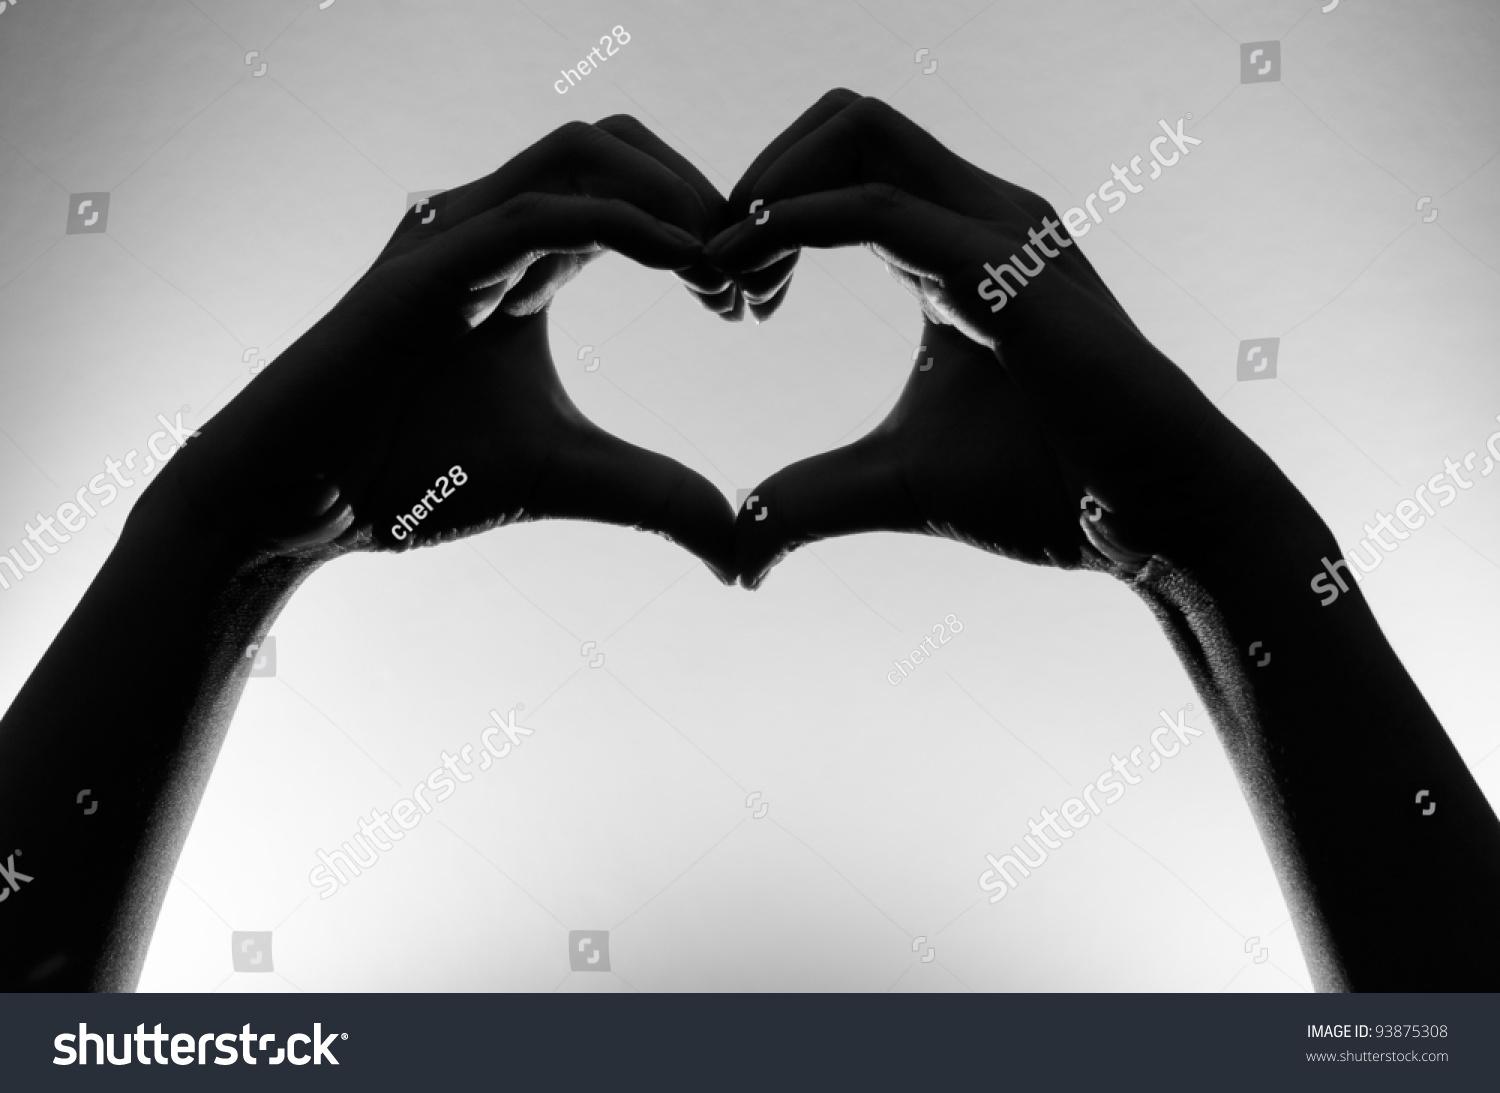 Black white heart hands silhouette stock photo edit now 93875308